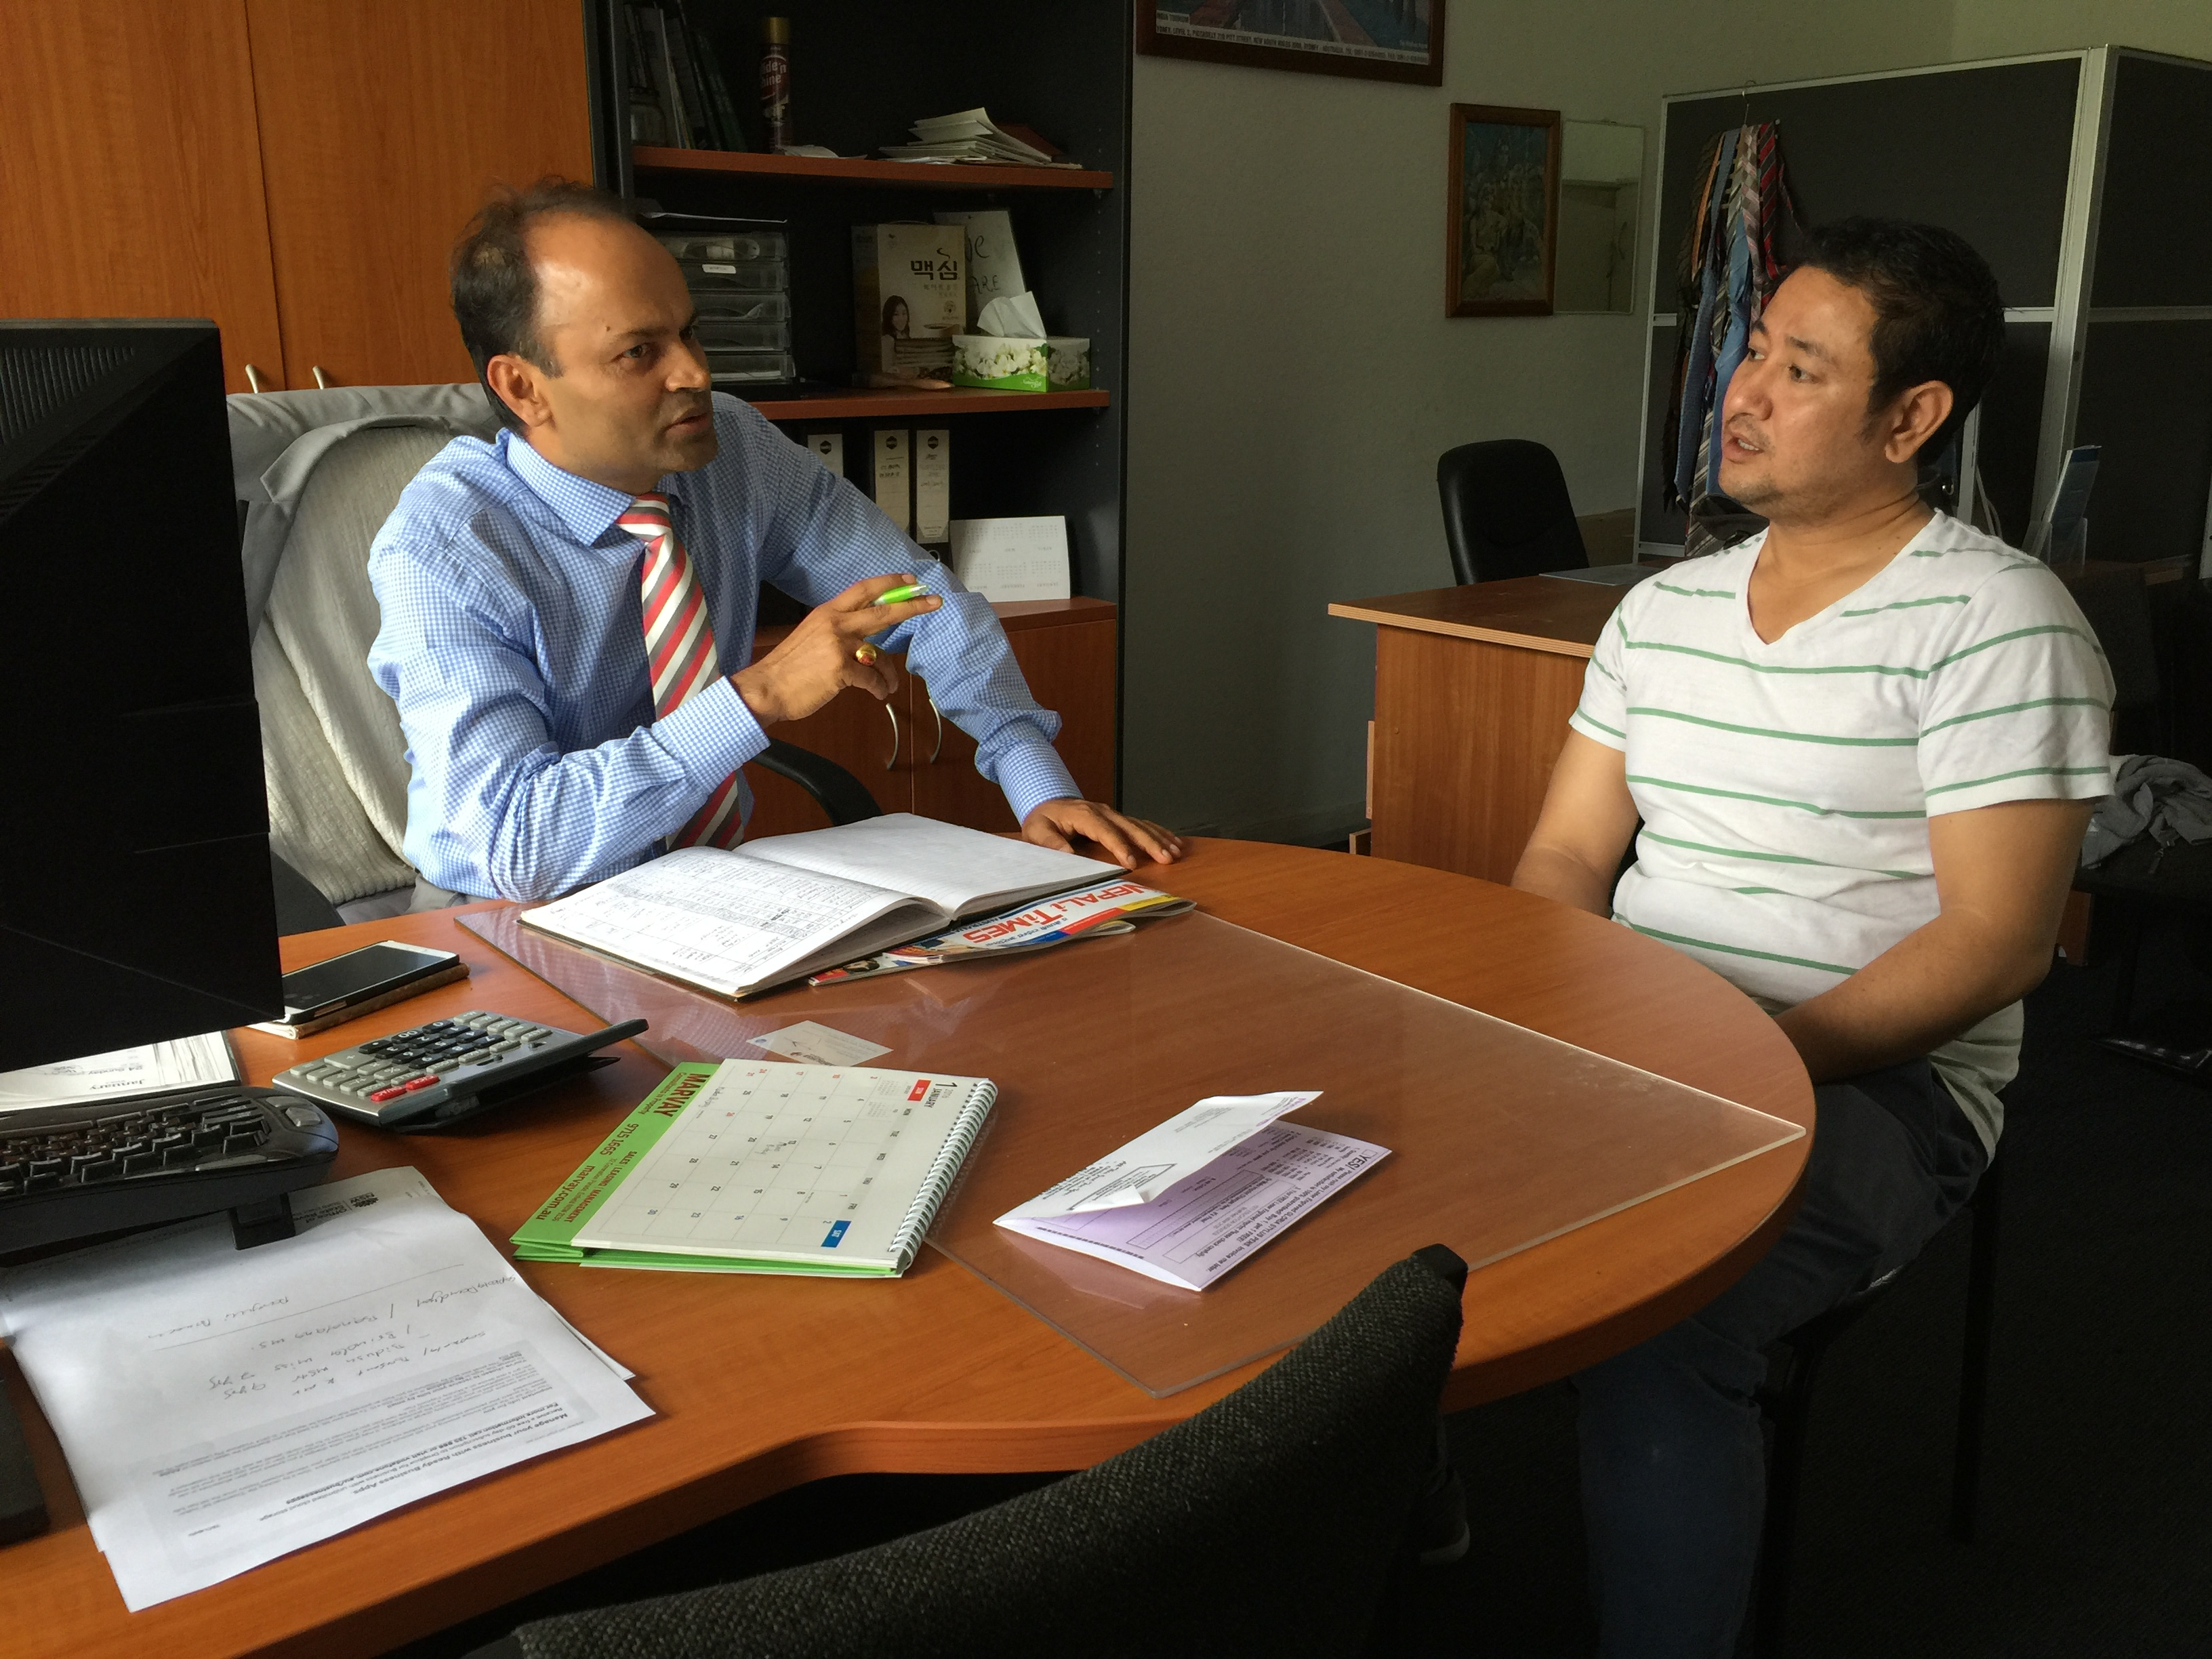 amit shrestha interview - fault book review